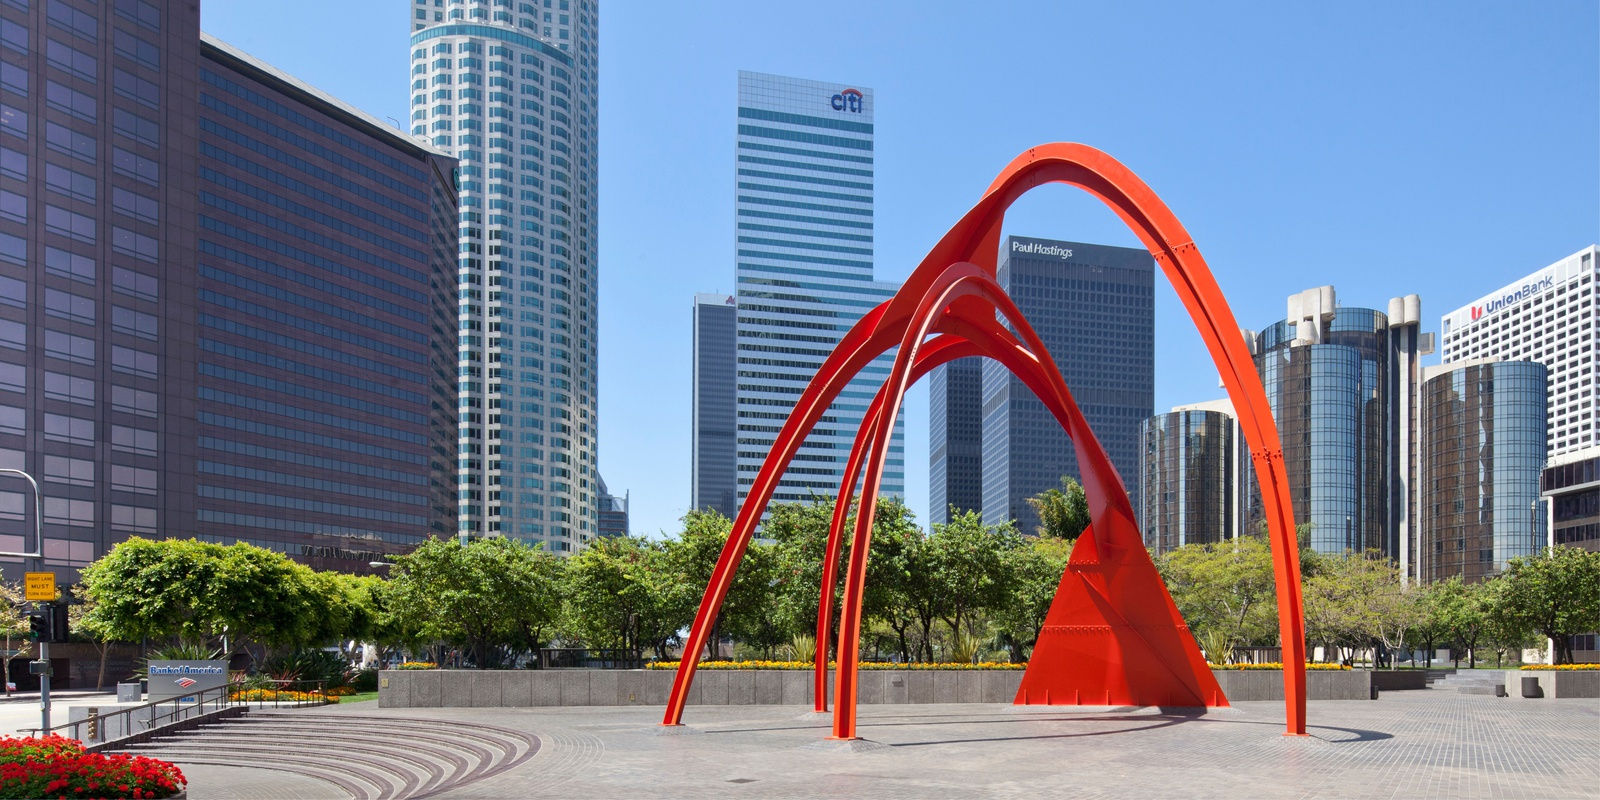 Red sculpture outside of the building